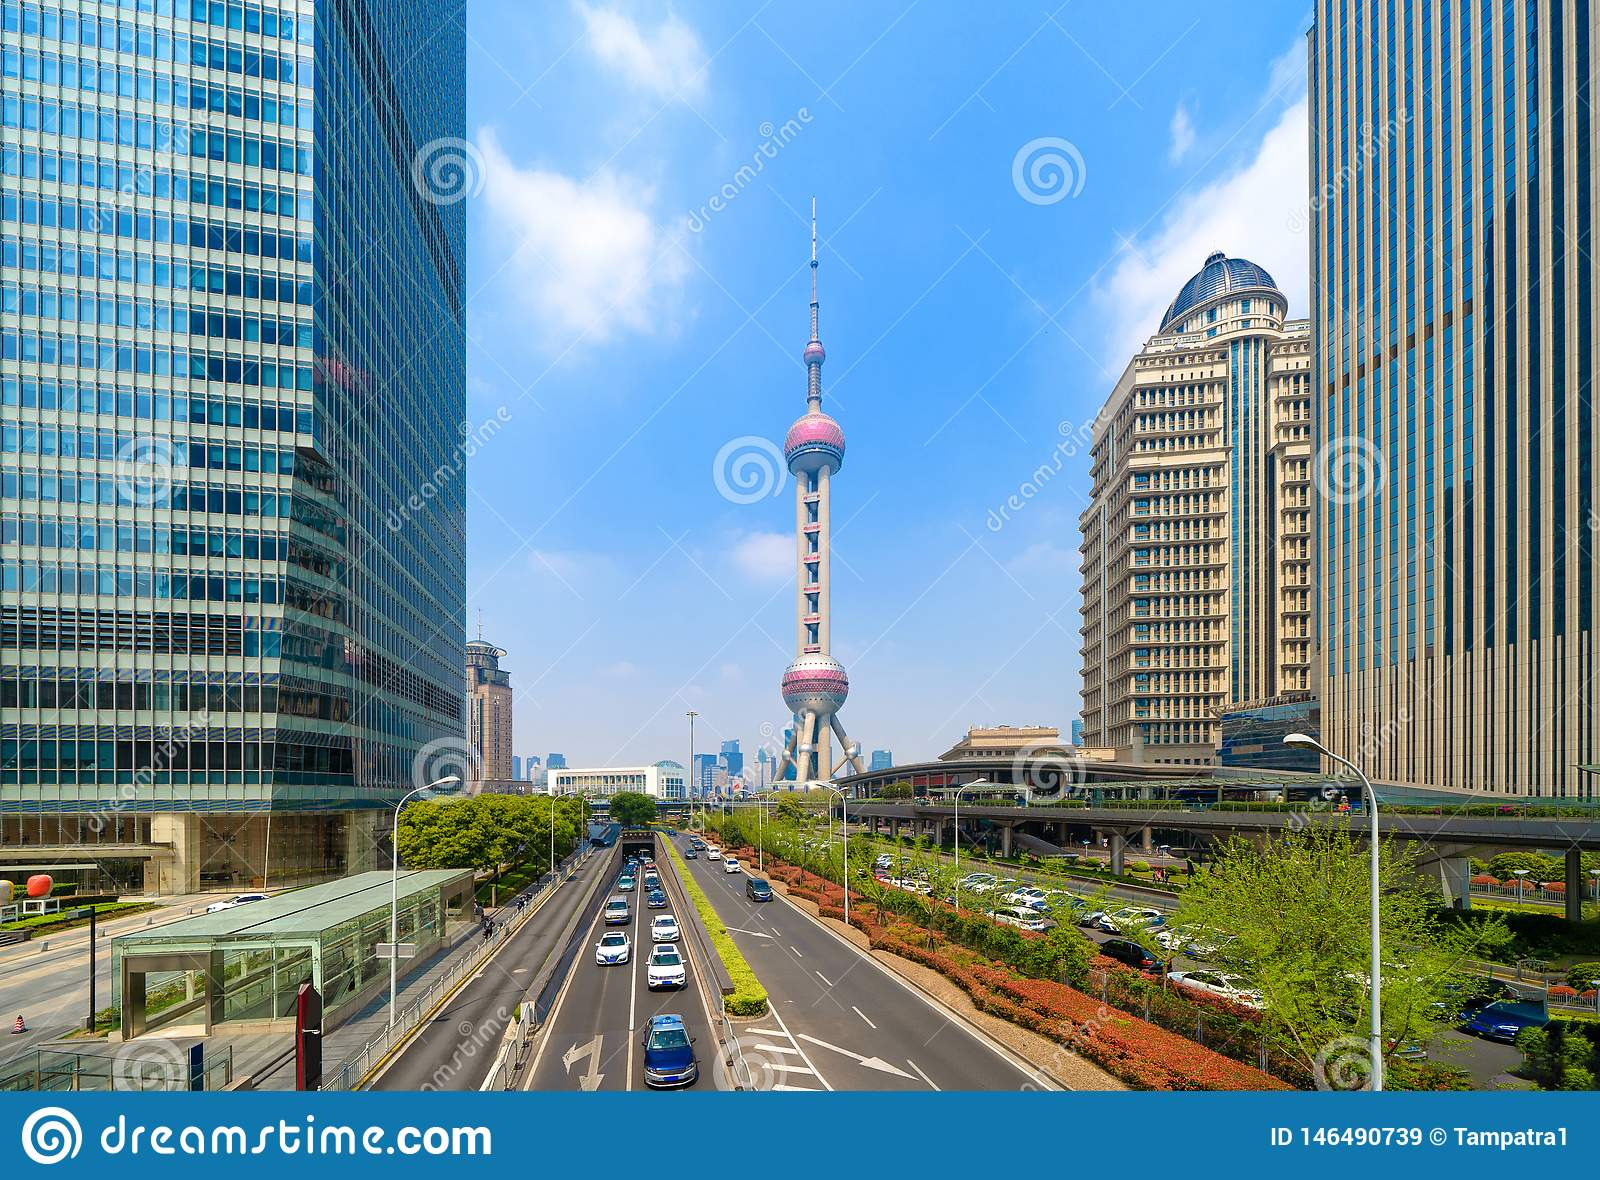 Shanghai Oriental pearl TV tower building in Shanghai Downtown skyline, China. Financial district and business centers in smart